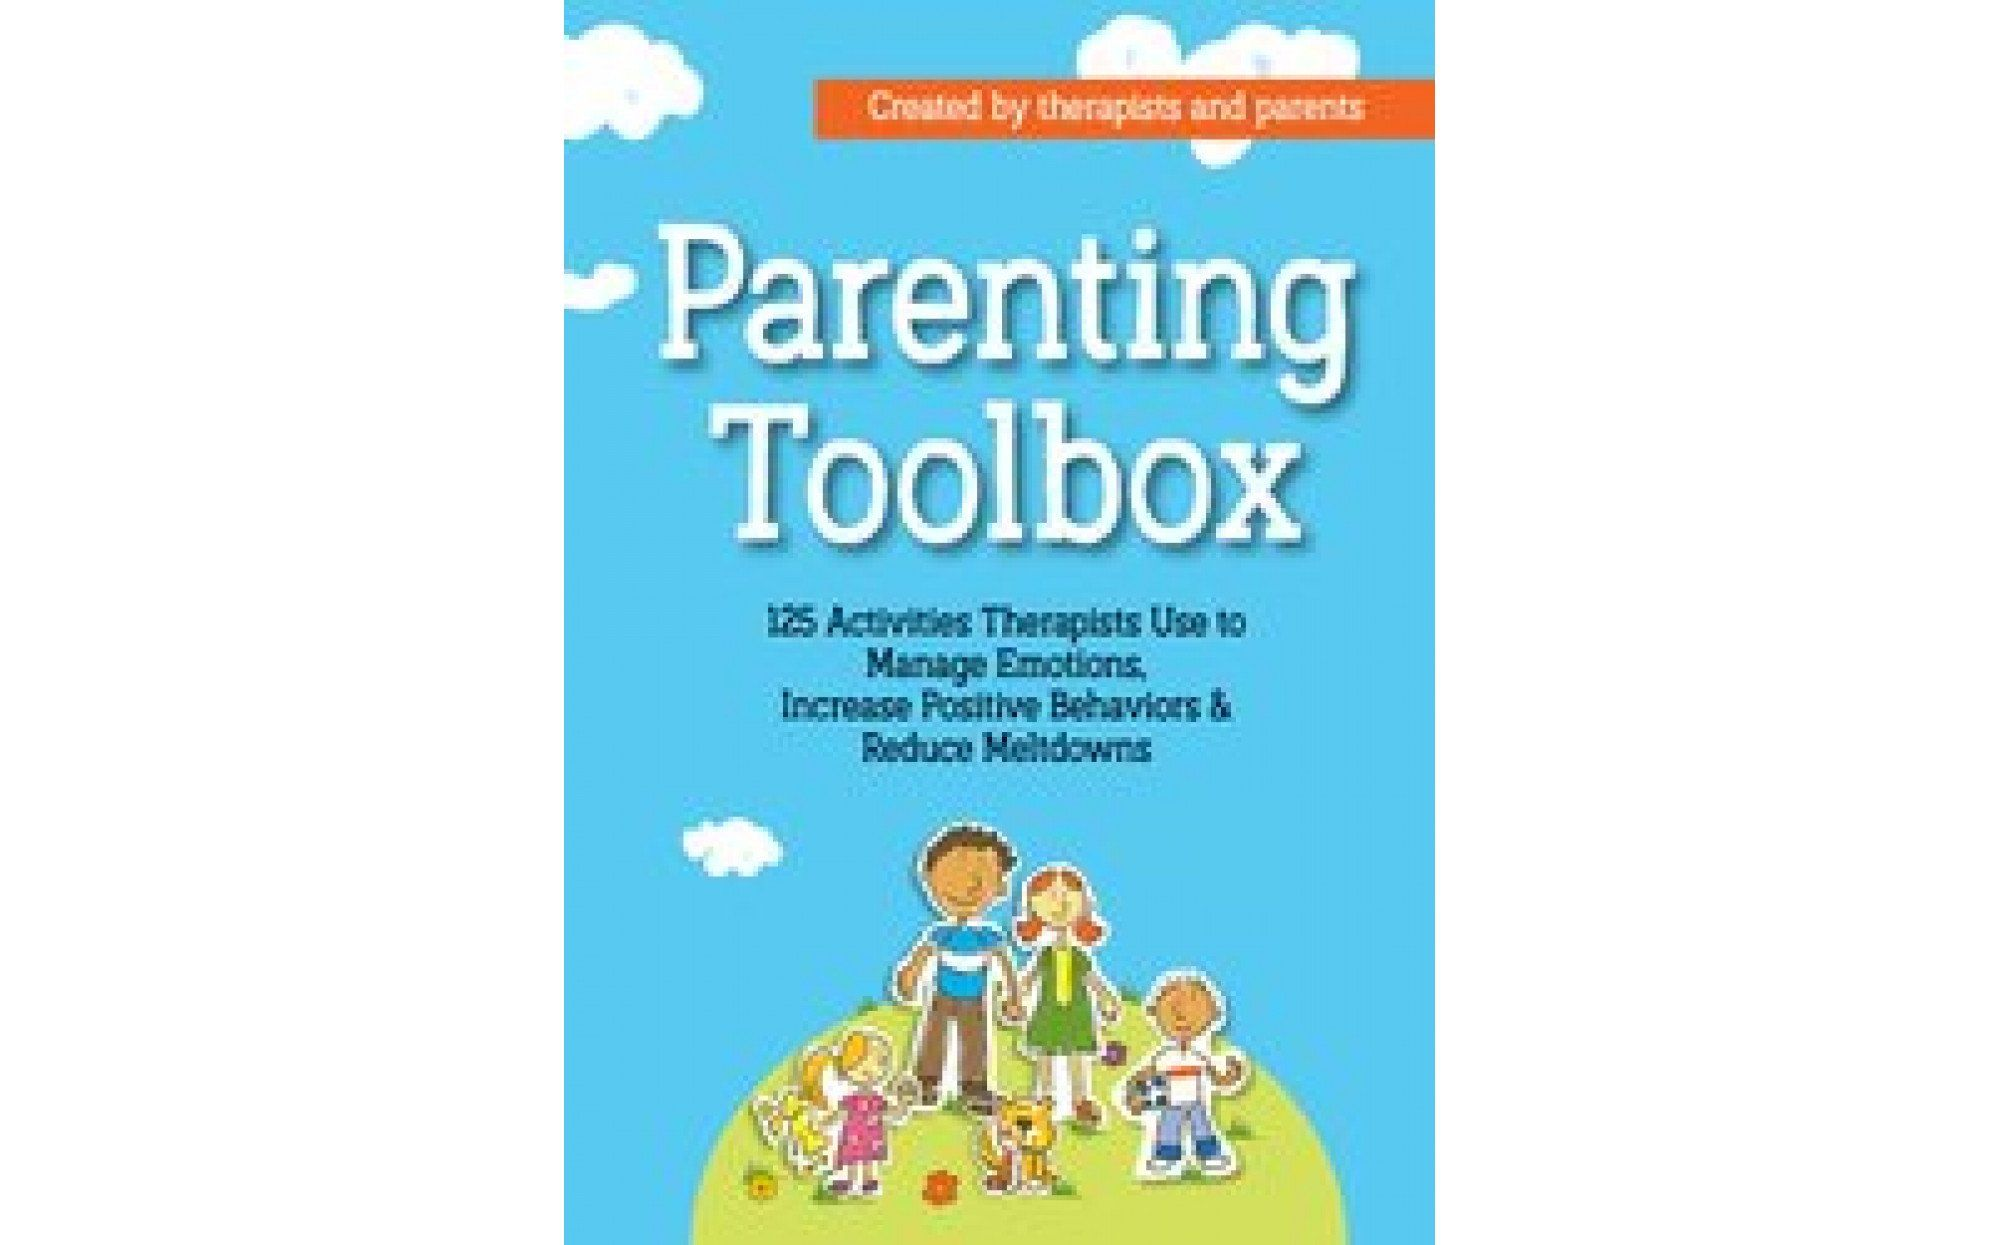 Parenting Toolbox 125 Activities Therapists Use To Reduce